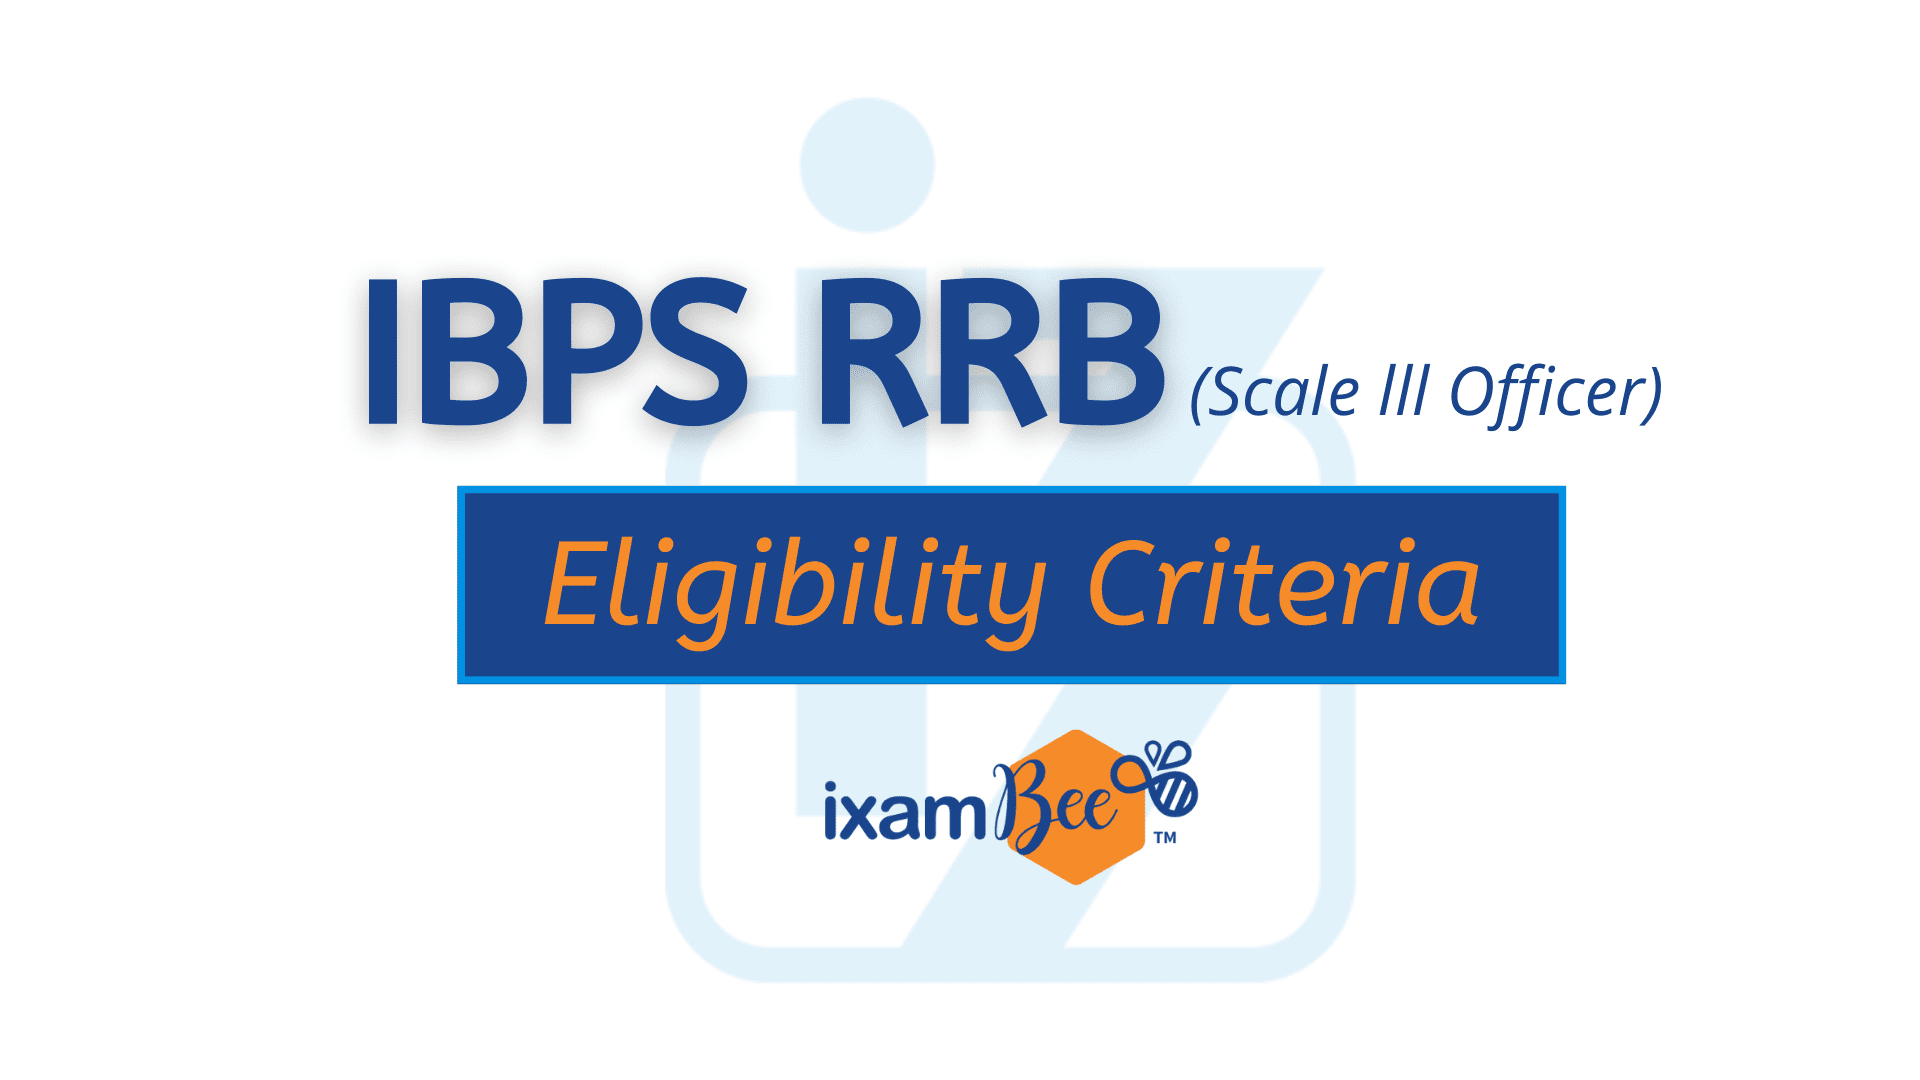 IBPS RRB Officer Scale III Exam Eligibility Criteria